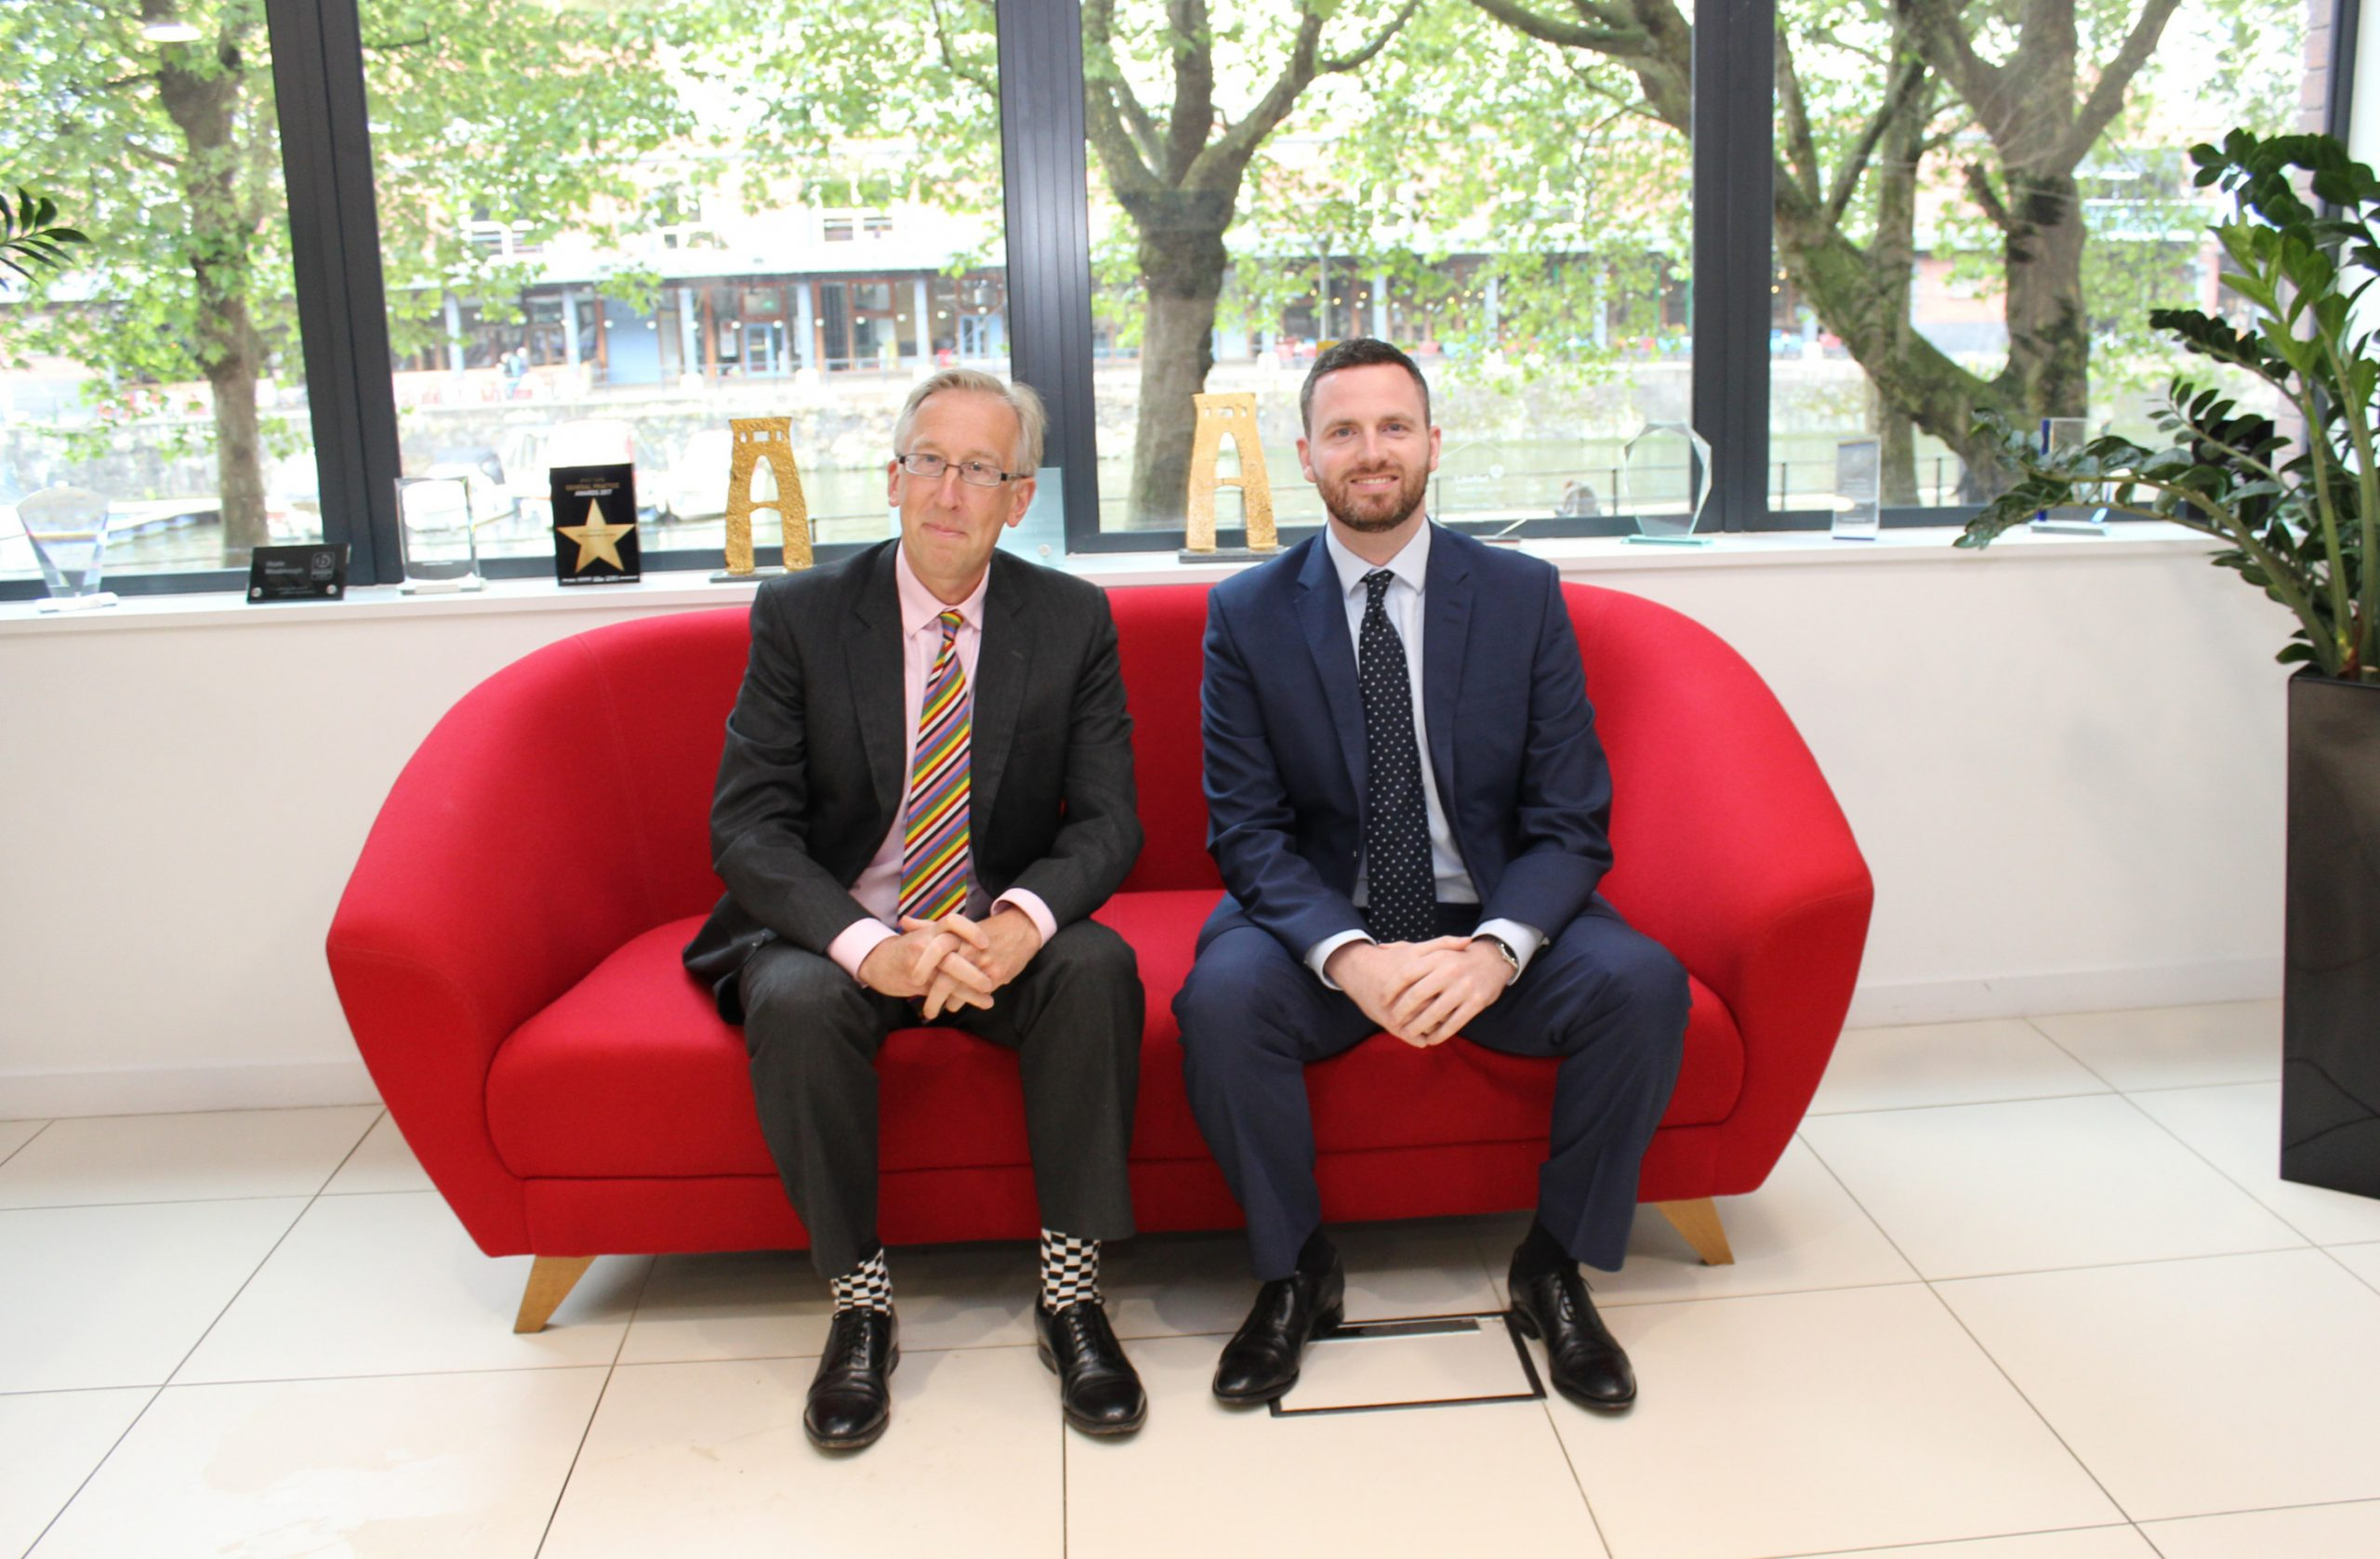 Watford Law Firm Continues Growth with Private Client Partner Appointment